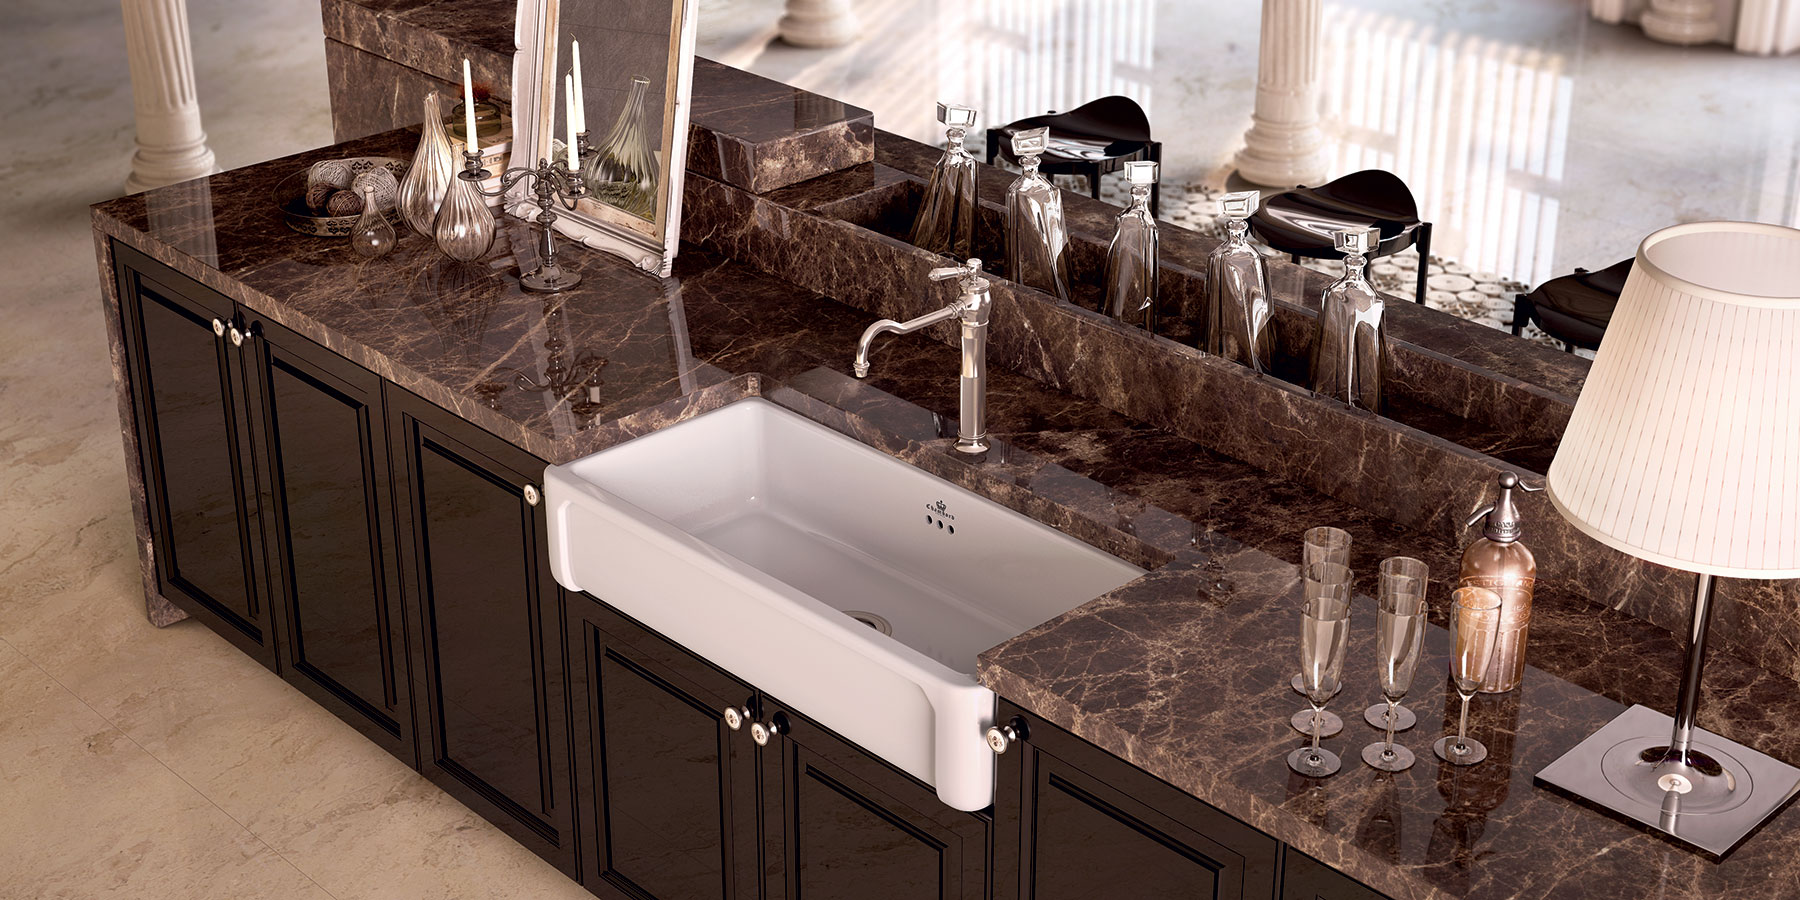 Transitional Henri II Farmhouse Kitchen Sink